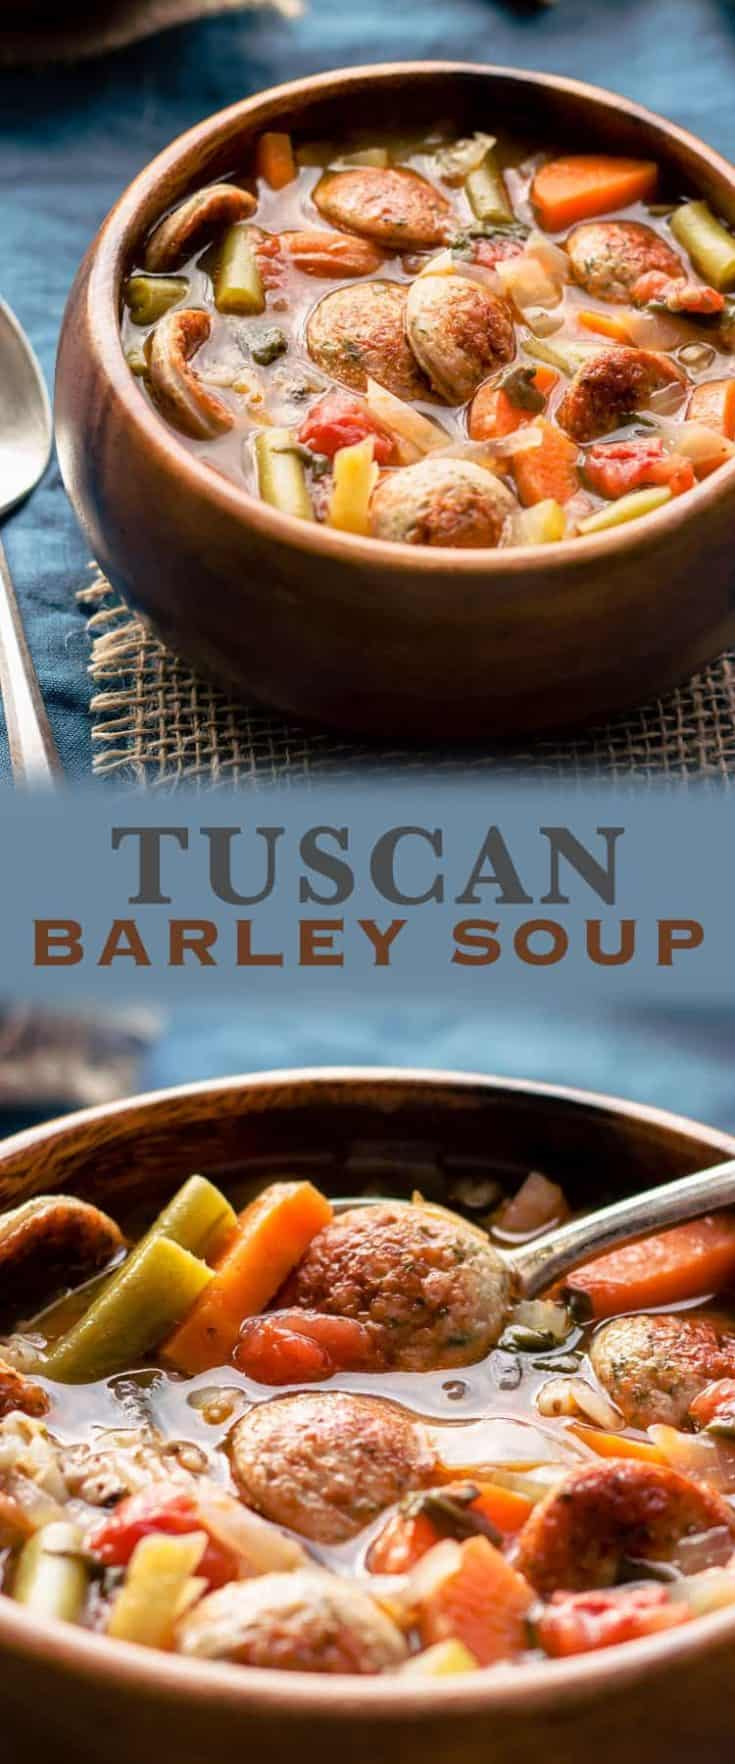 Delicious and healthy Tuscan Barley Soup - full of vegetables and low-fat turkey sausages, it's very easy to make and ready within 60 minutes. #soups #souprecipe #tuscansoup #barleysoup